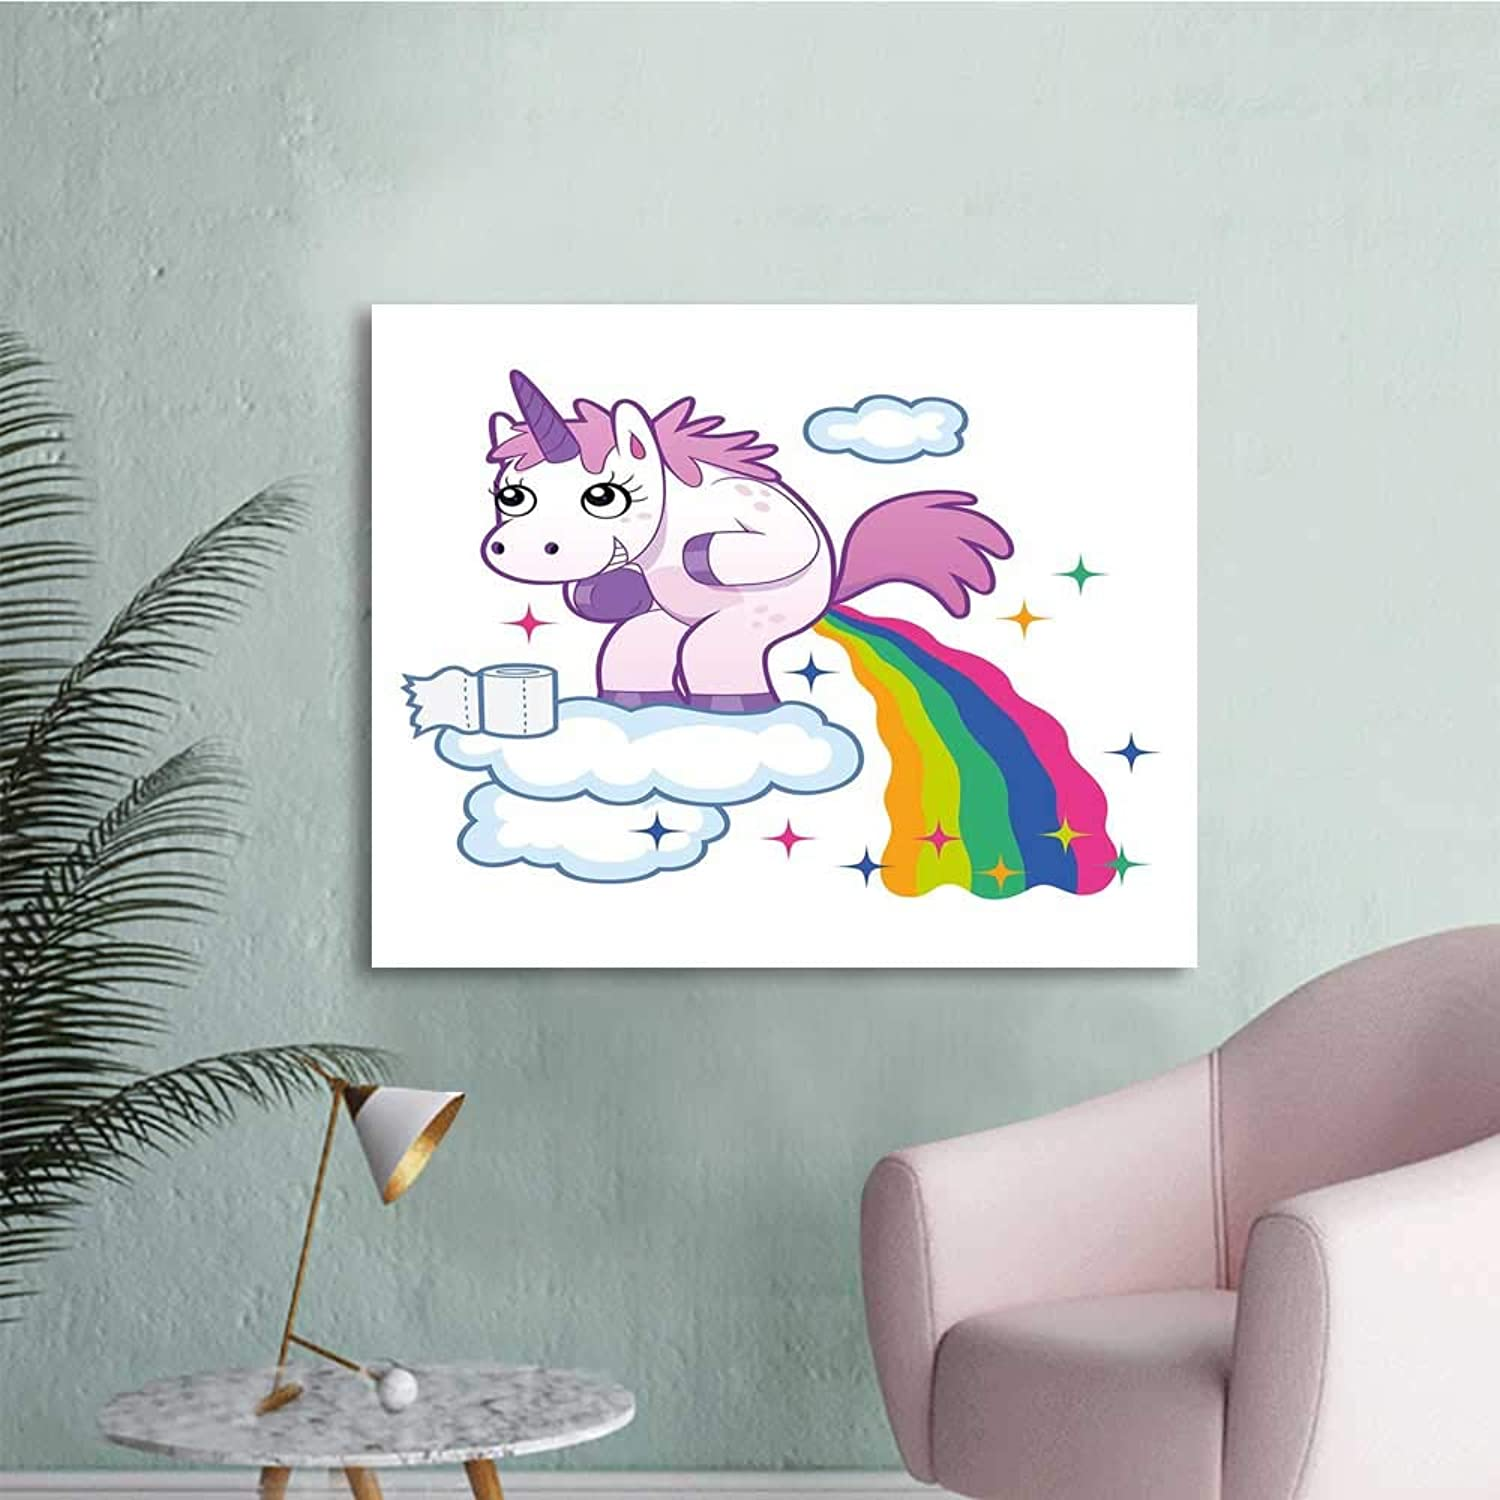 Funny, Girls Wall Art Canvas Prints Unicorn Pooping Rainbow Over Clouds Creative Kids Girls Fairy Tale Fantasy Cartoon W36 xL32 Wall Stickers for Kids